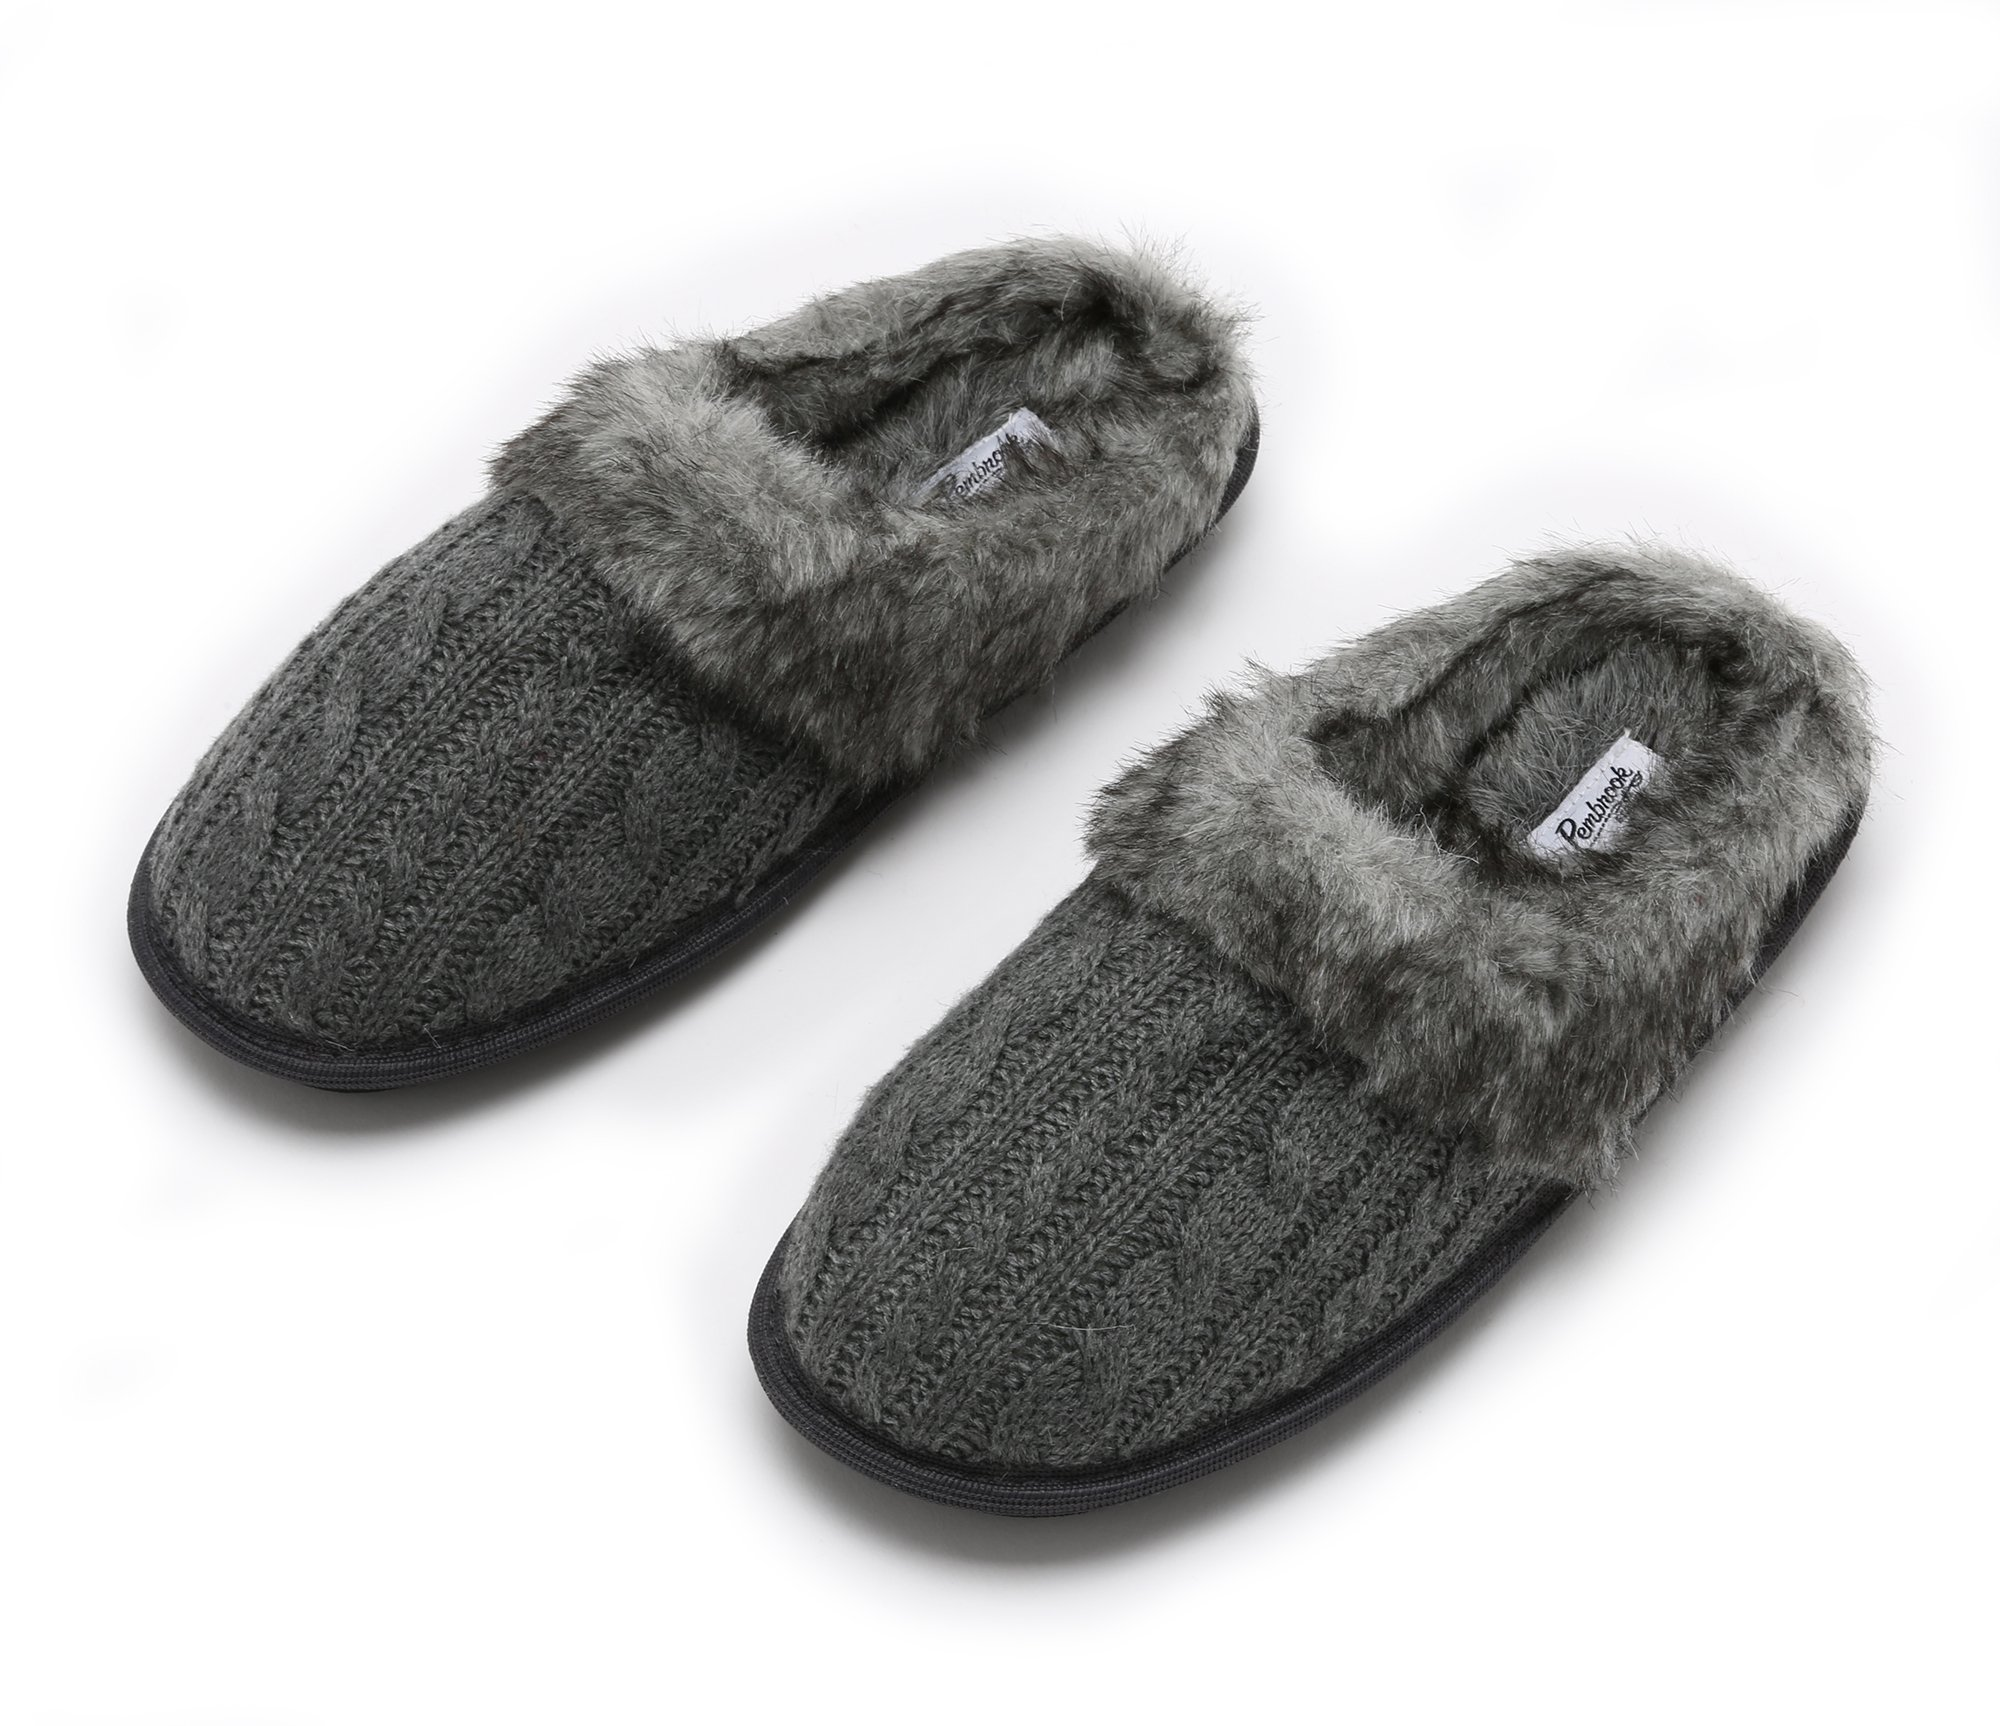 Pembrook Ladies Faux Fur + Cable Knit Slippers – Gray, Large - Comfortable Memory Foam Indoor and Outdoor Non-Skid Sole - Great Plush Slip on House Shoes for adults, women, girls by Pembrook (Image #1)